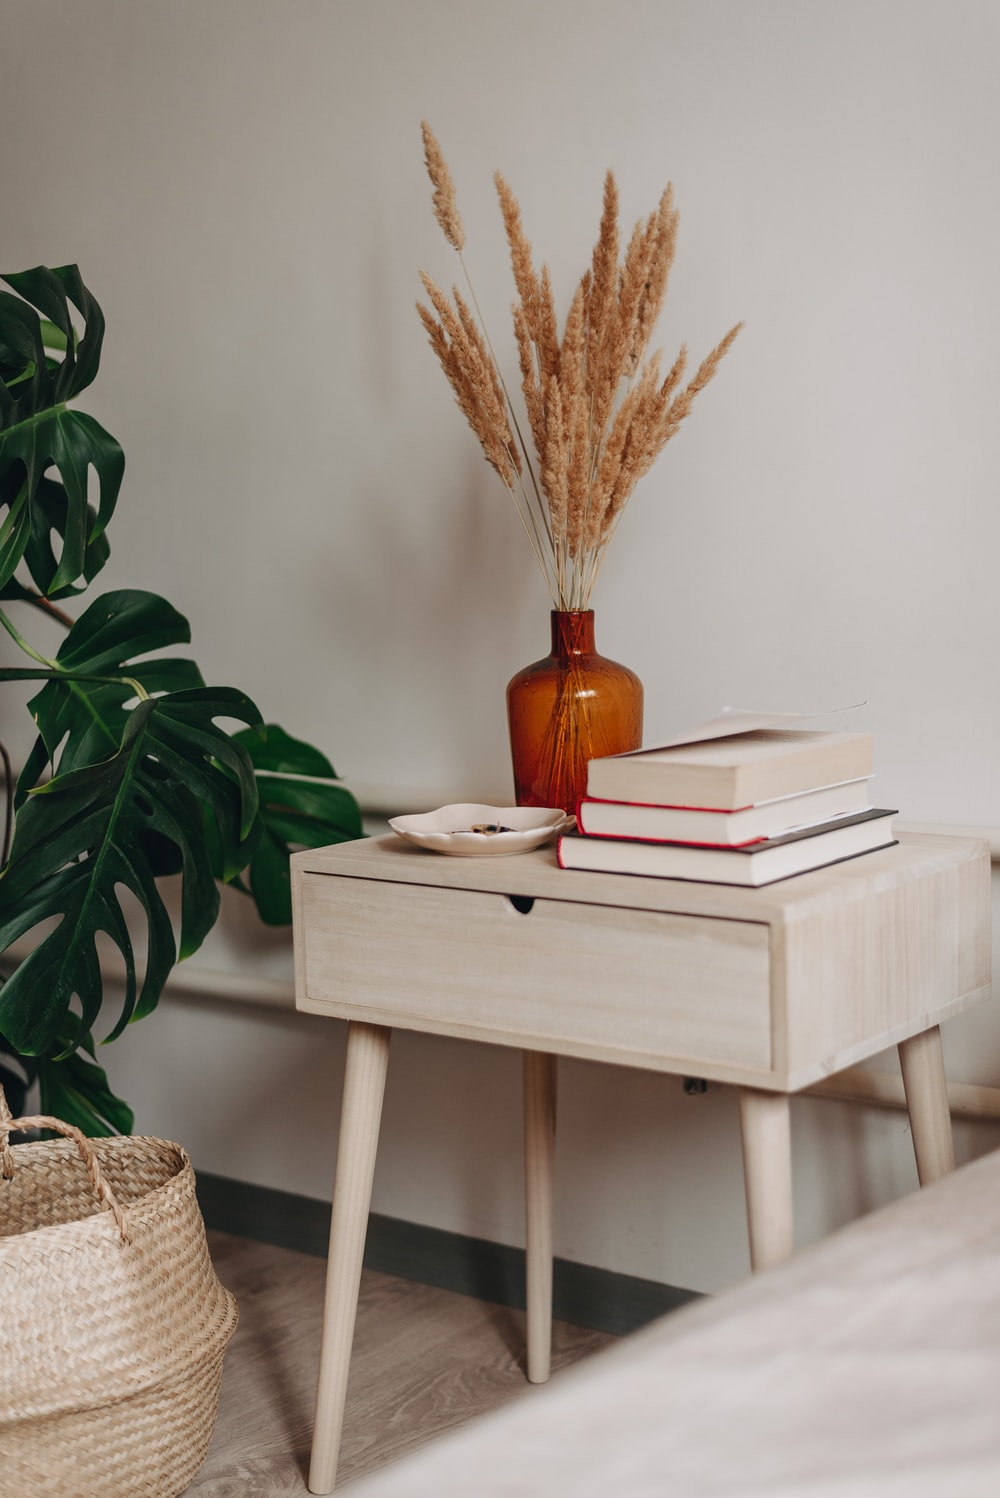 brown decorative wheat in brown ceramic vase near books on white wooden end table beside green leaf plant